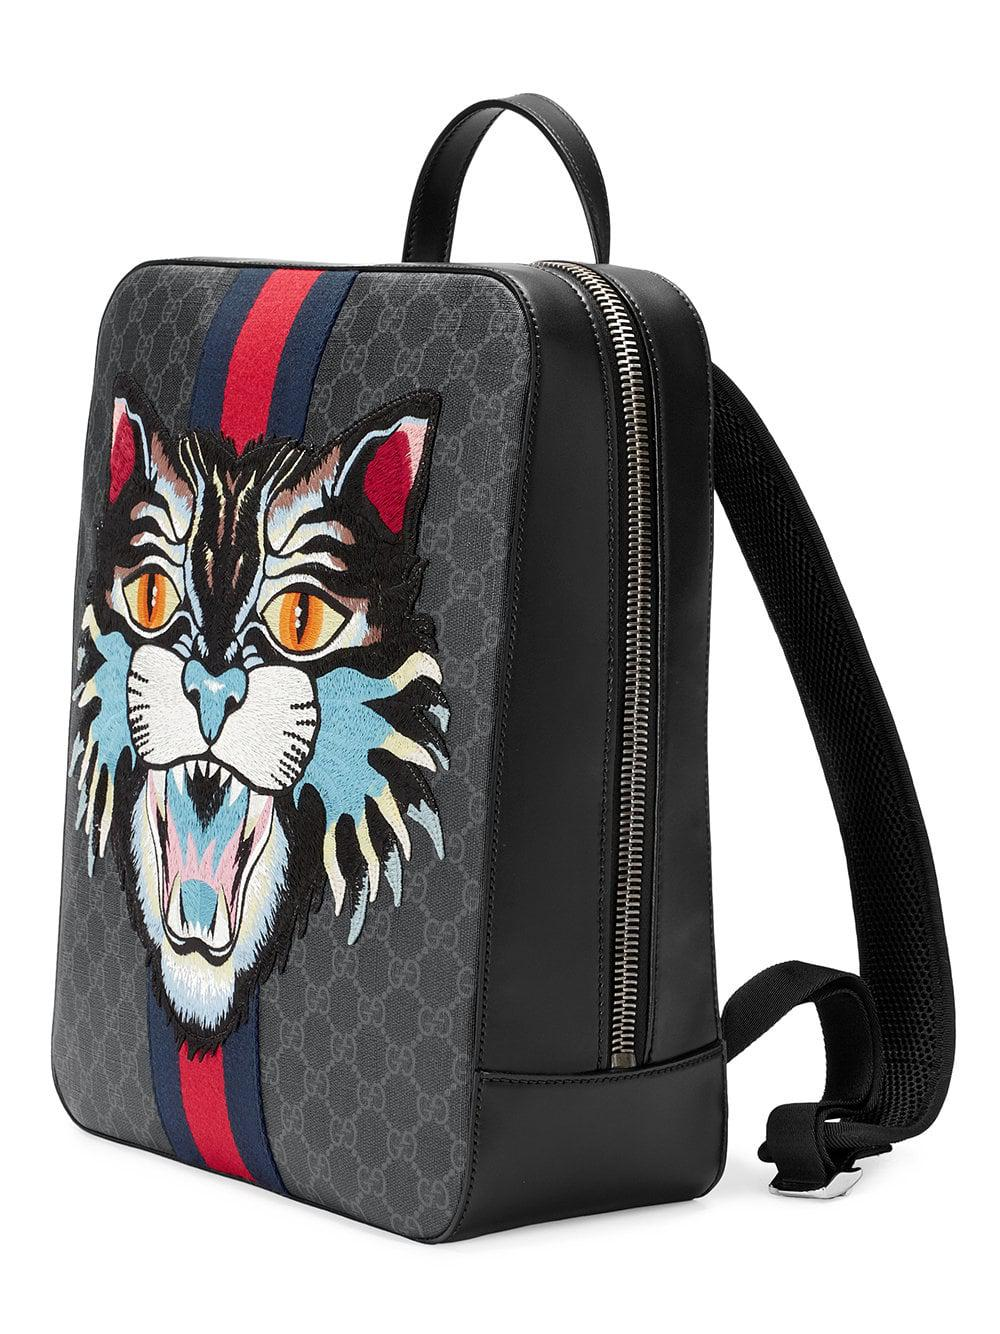 01ea47aa421c Gucci GG Supreme Backpack With Angry Cat in Black for Men - Lyst